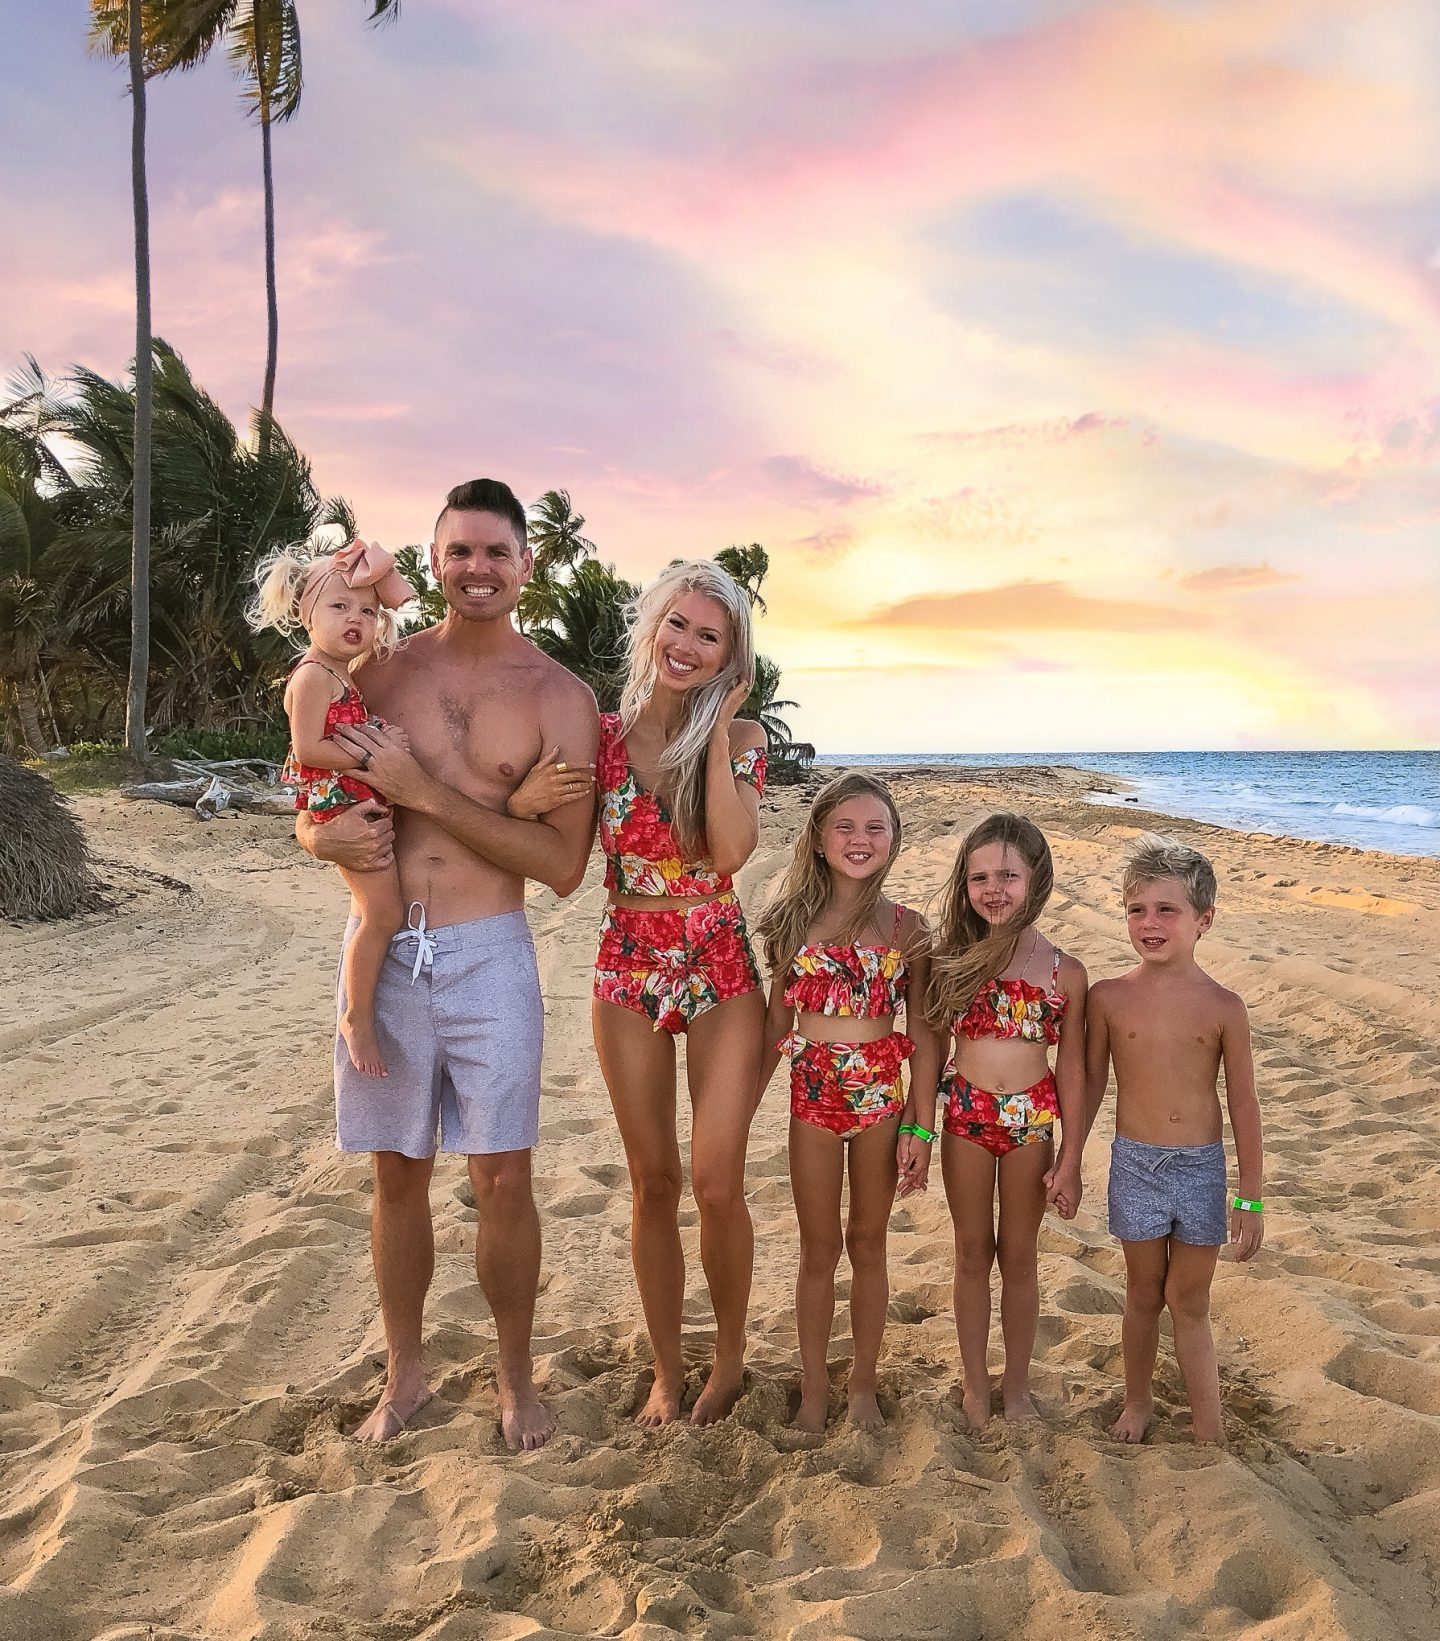 Dominican Republic — Nickelodeon Resort Family Vacation